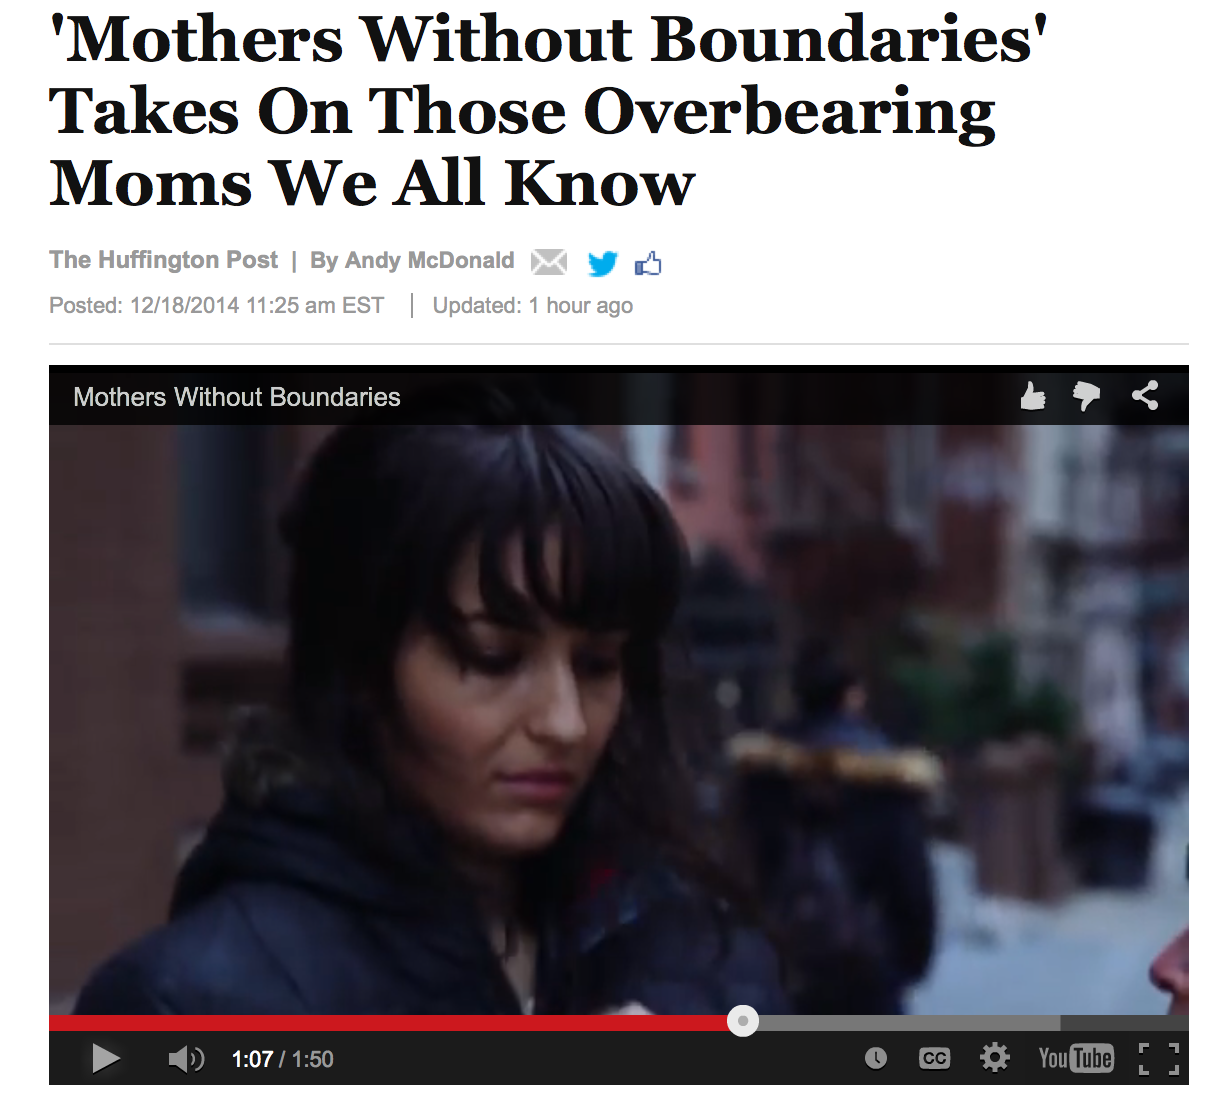 http://www.huffingtonpost.com/2014/12/17/mothers-without-boundaries-video_n_6343534.html?1418919939